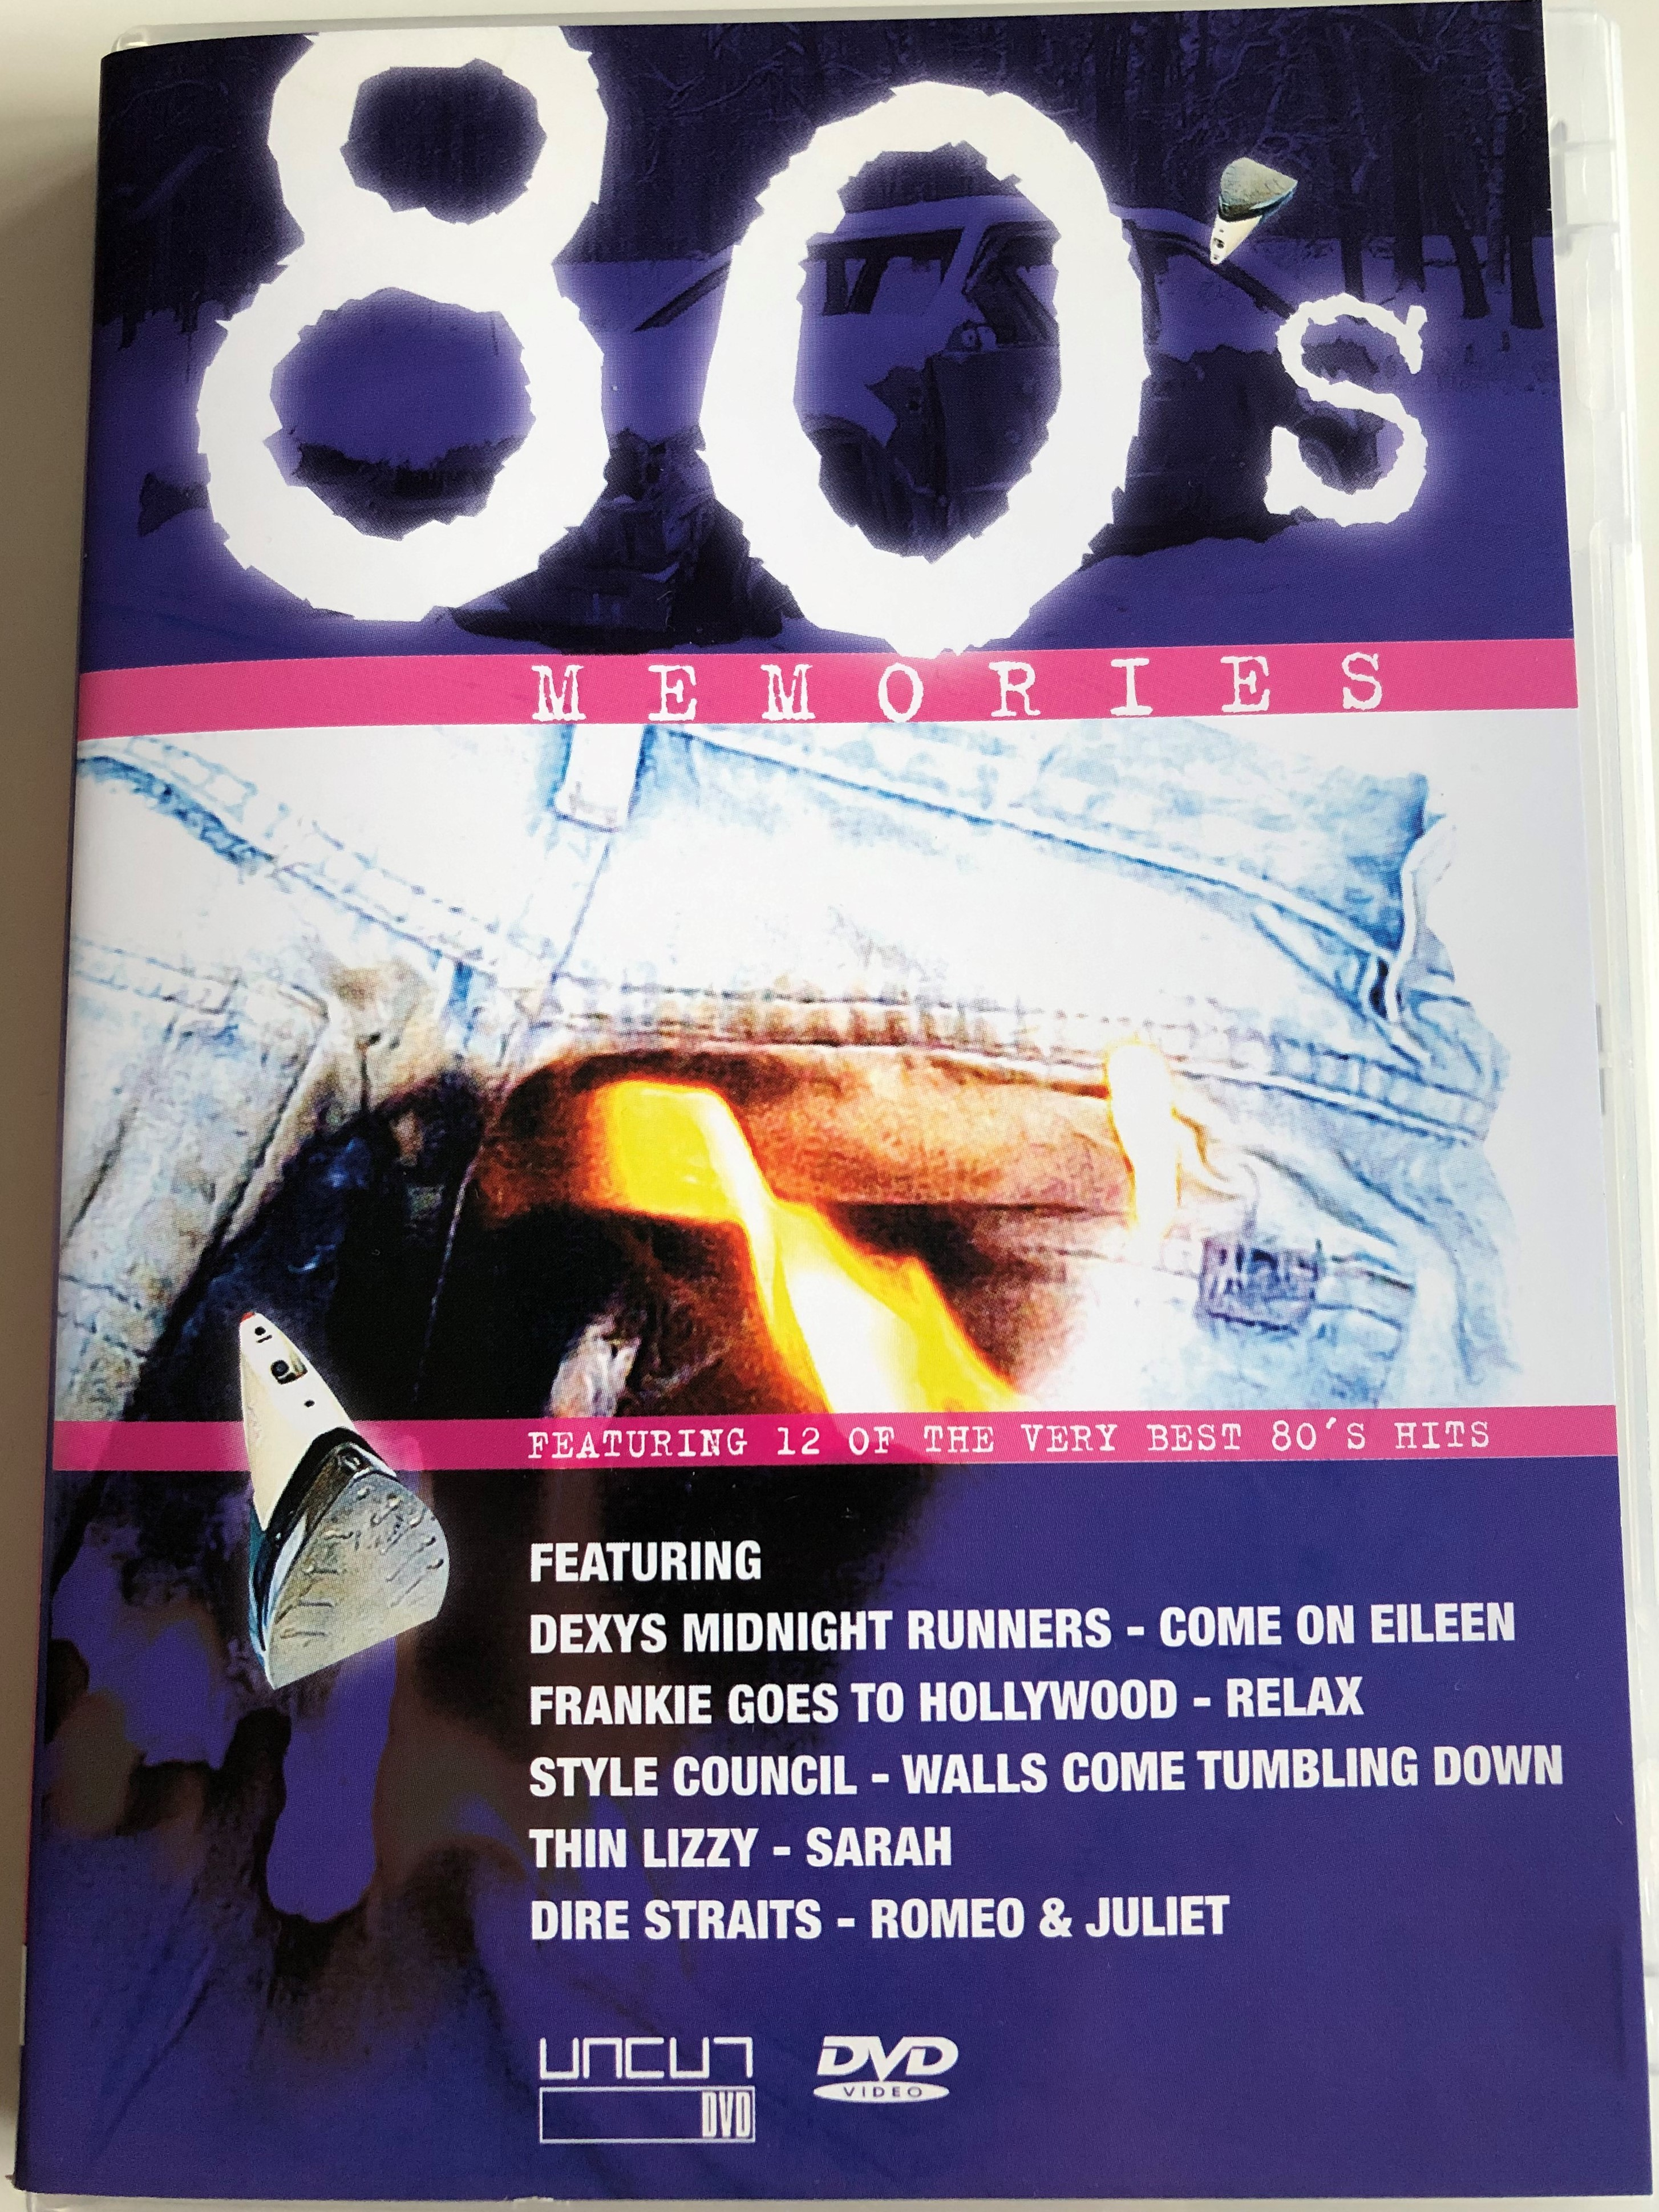 80-s-memories-dvd-featuring-12-of-the-very-best-80-s-hits-1.jpg